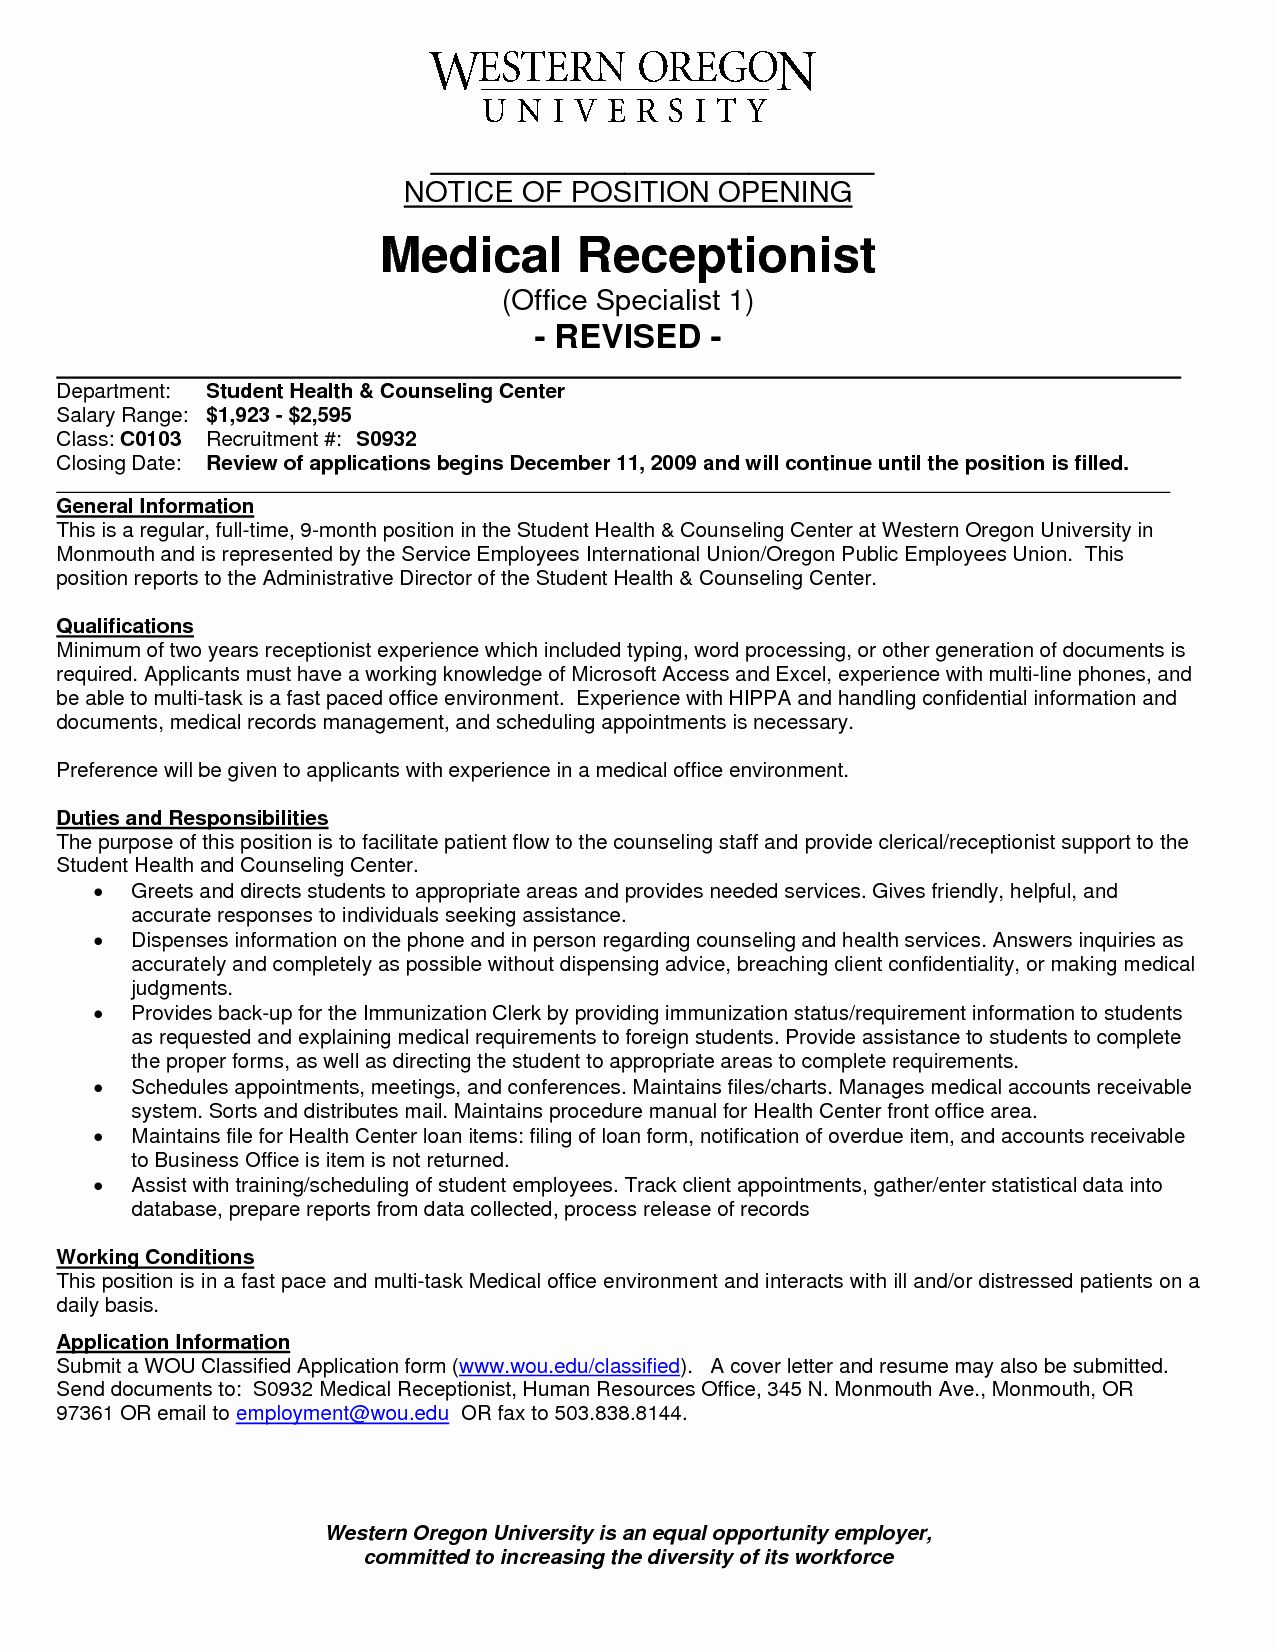 front desk clerk resume fresh medical receptionist with no experience jobs worker program Resume Front Desk Worker Resume